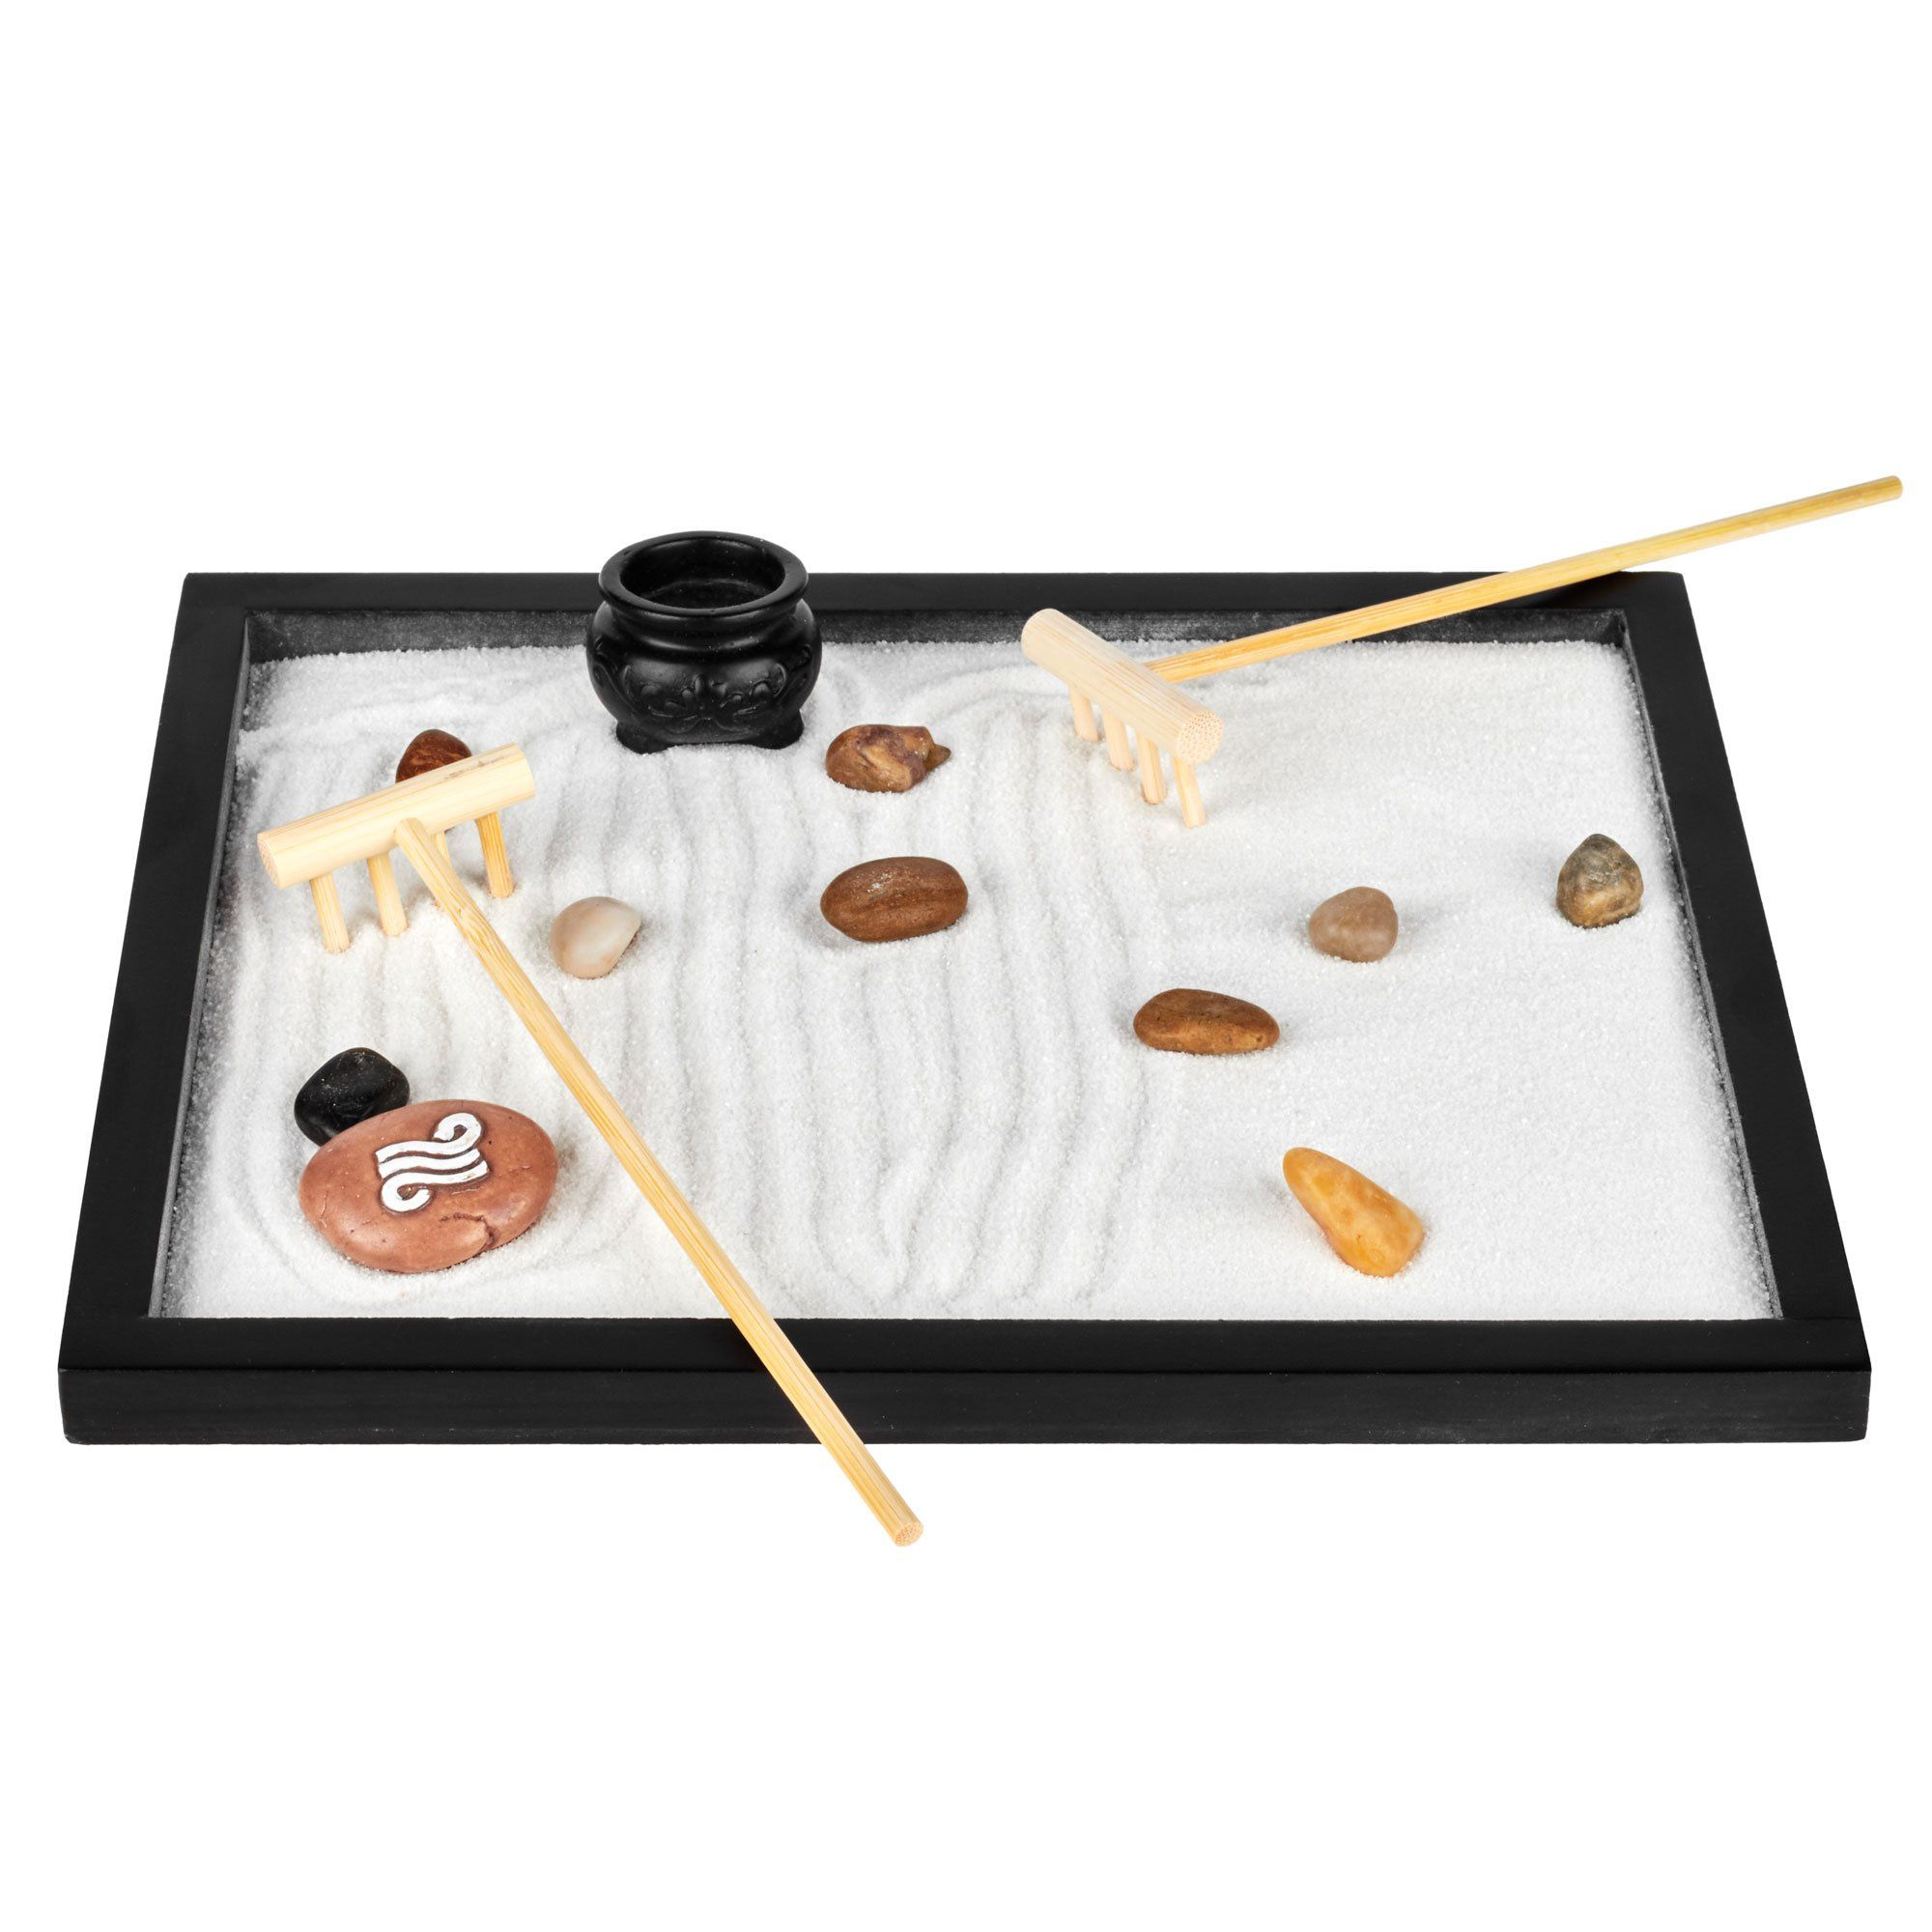 Tabletop Relaxation Meditation Landscape Kit Zen Sand Garden for Desk /& Office Decor Wood Base 2 Bags White Sand 2 Mini Bamboo Rakes Clay Incense Pot Small Decorative Rocks /& Large Painted Rock